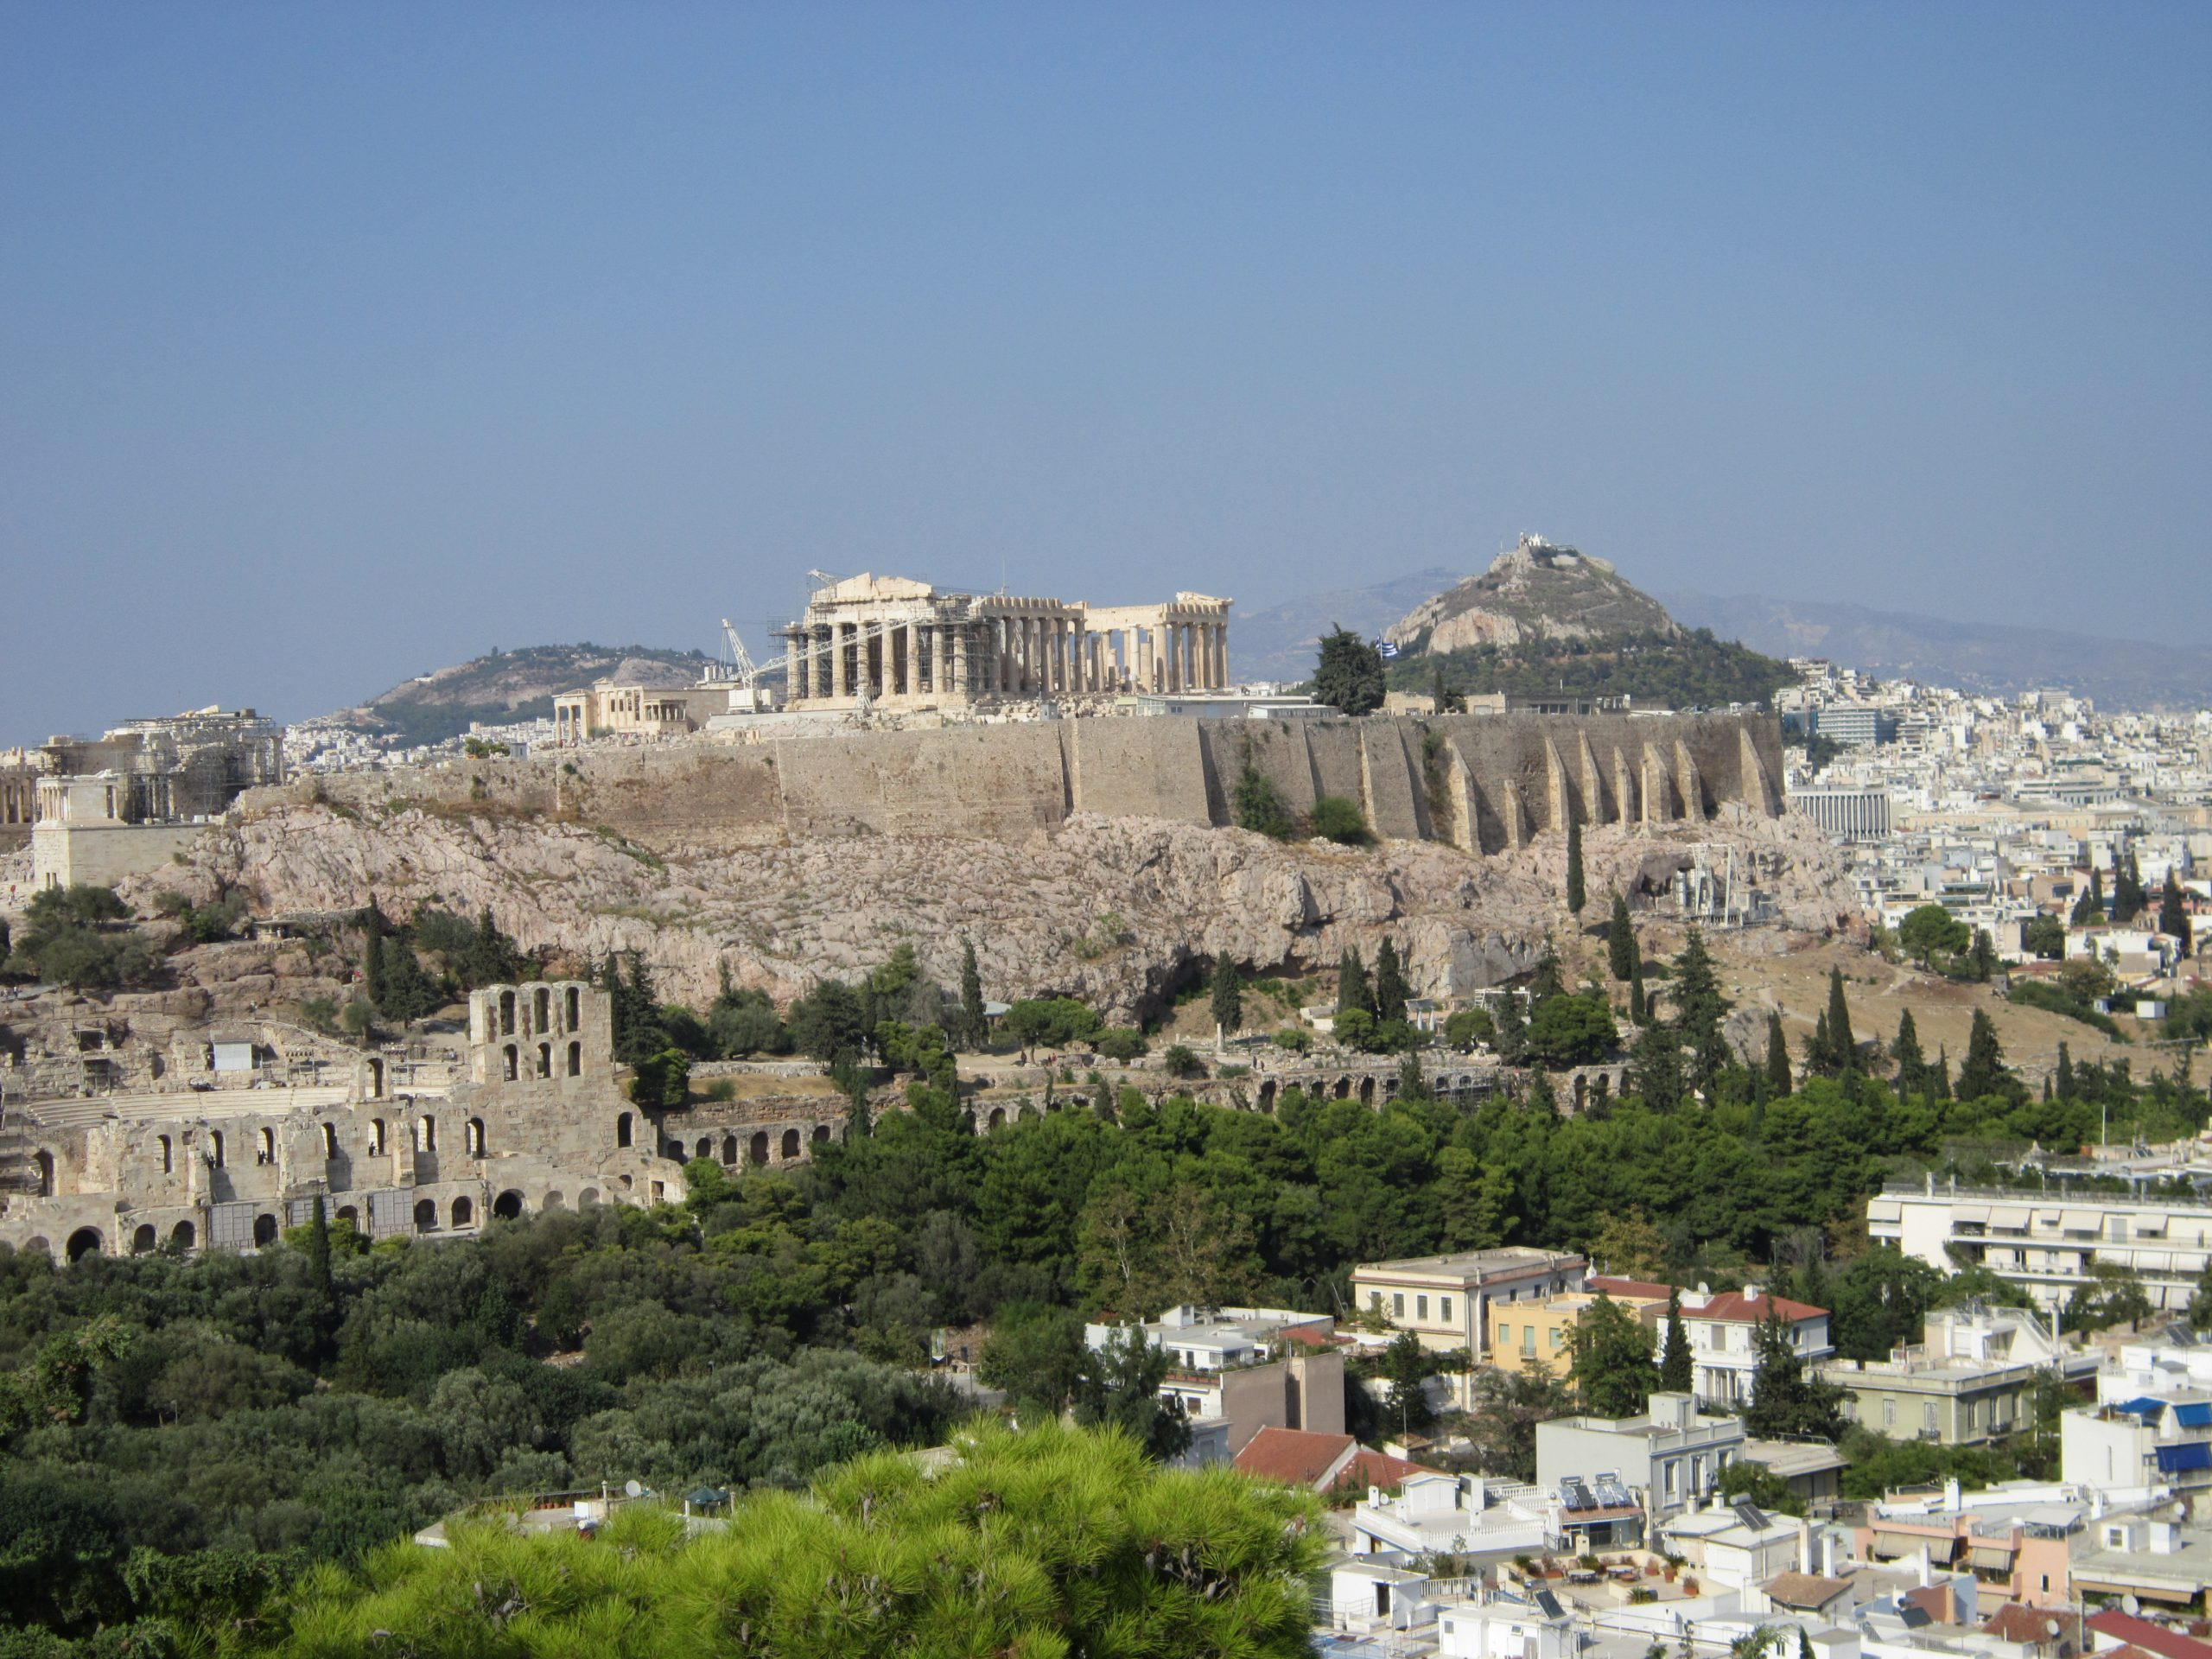 A view of the Athens Acroplis with woods and building sin the foreground and Mount Lycabettus in the background.